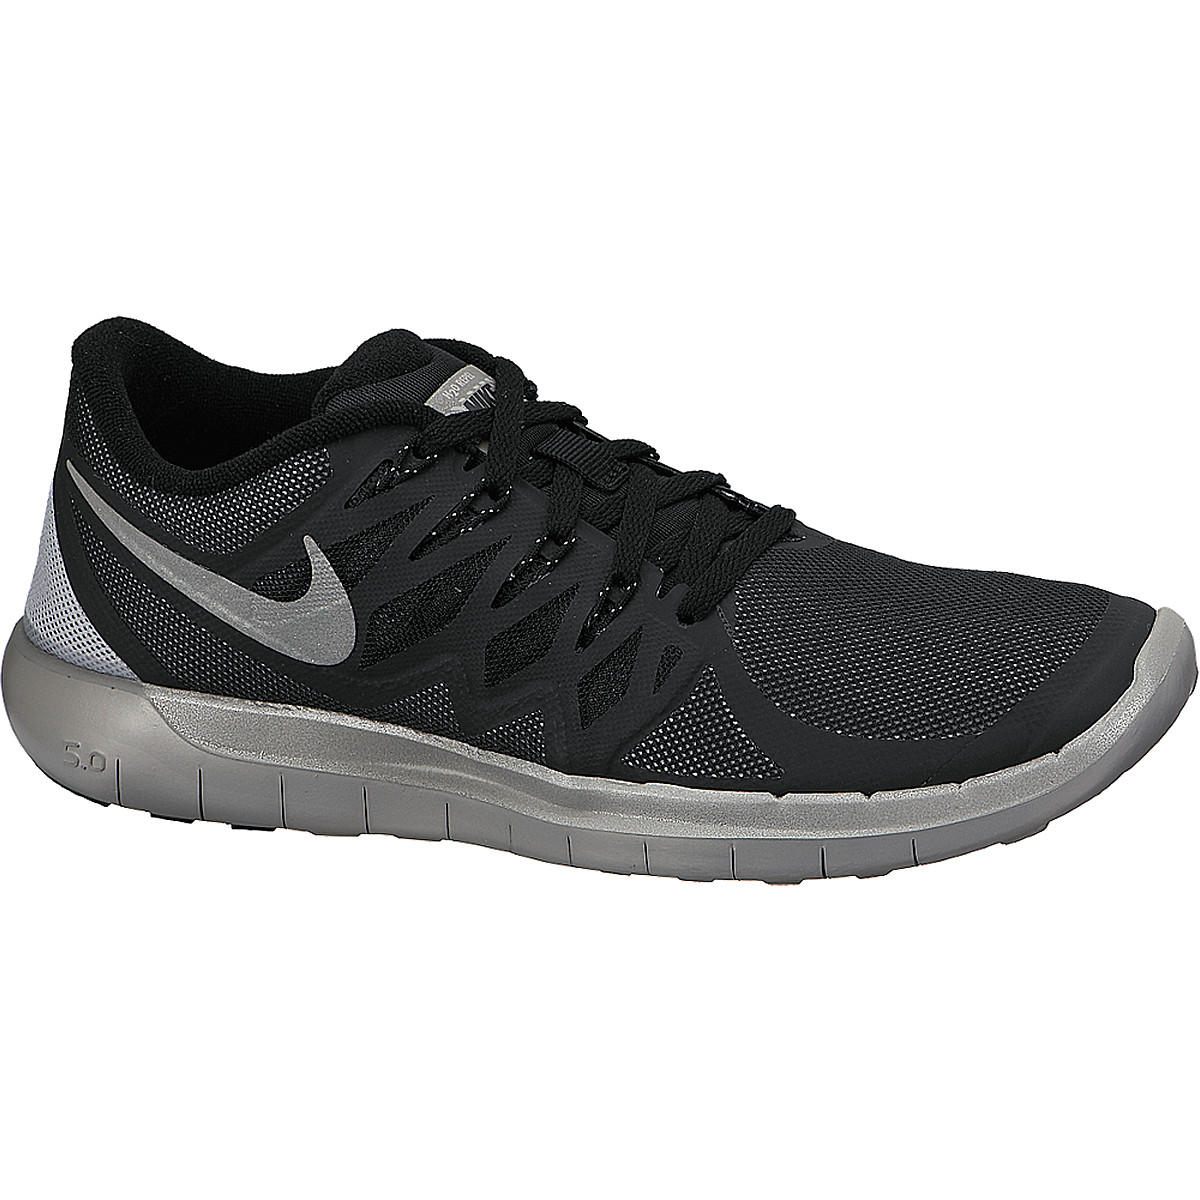 nike s free 5 0 flash running shoes from sports